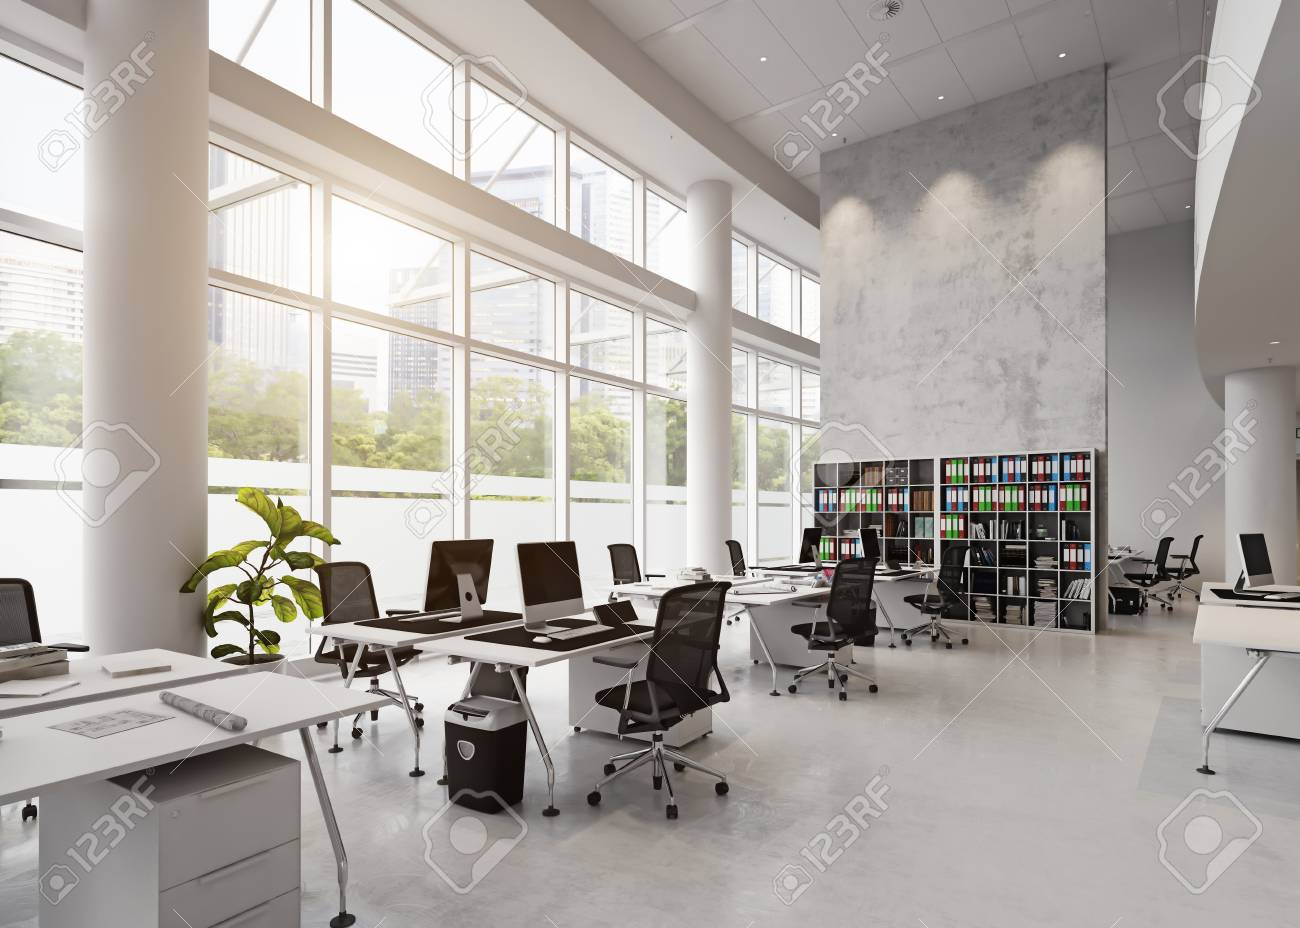 Modern Office Building Interior 3d Rendering Concept Stock Photo Picture And Royalty Free Image Image 93303667